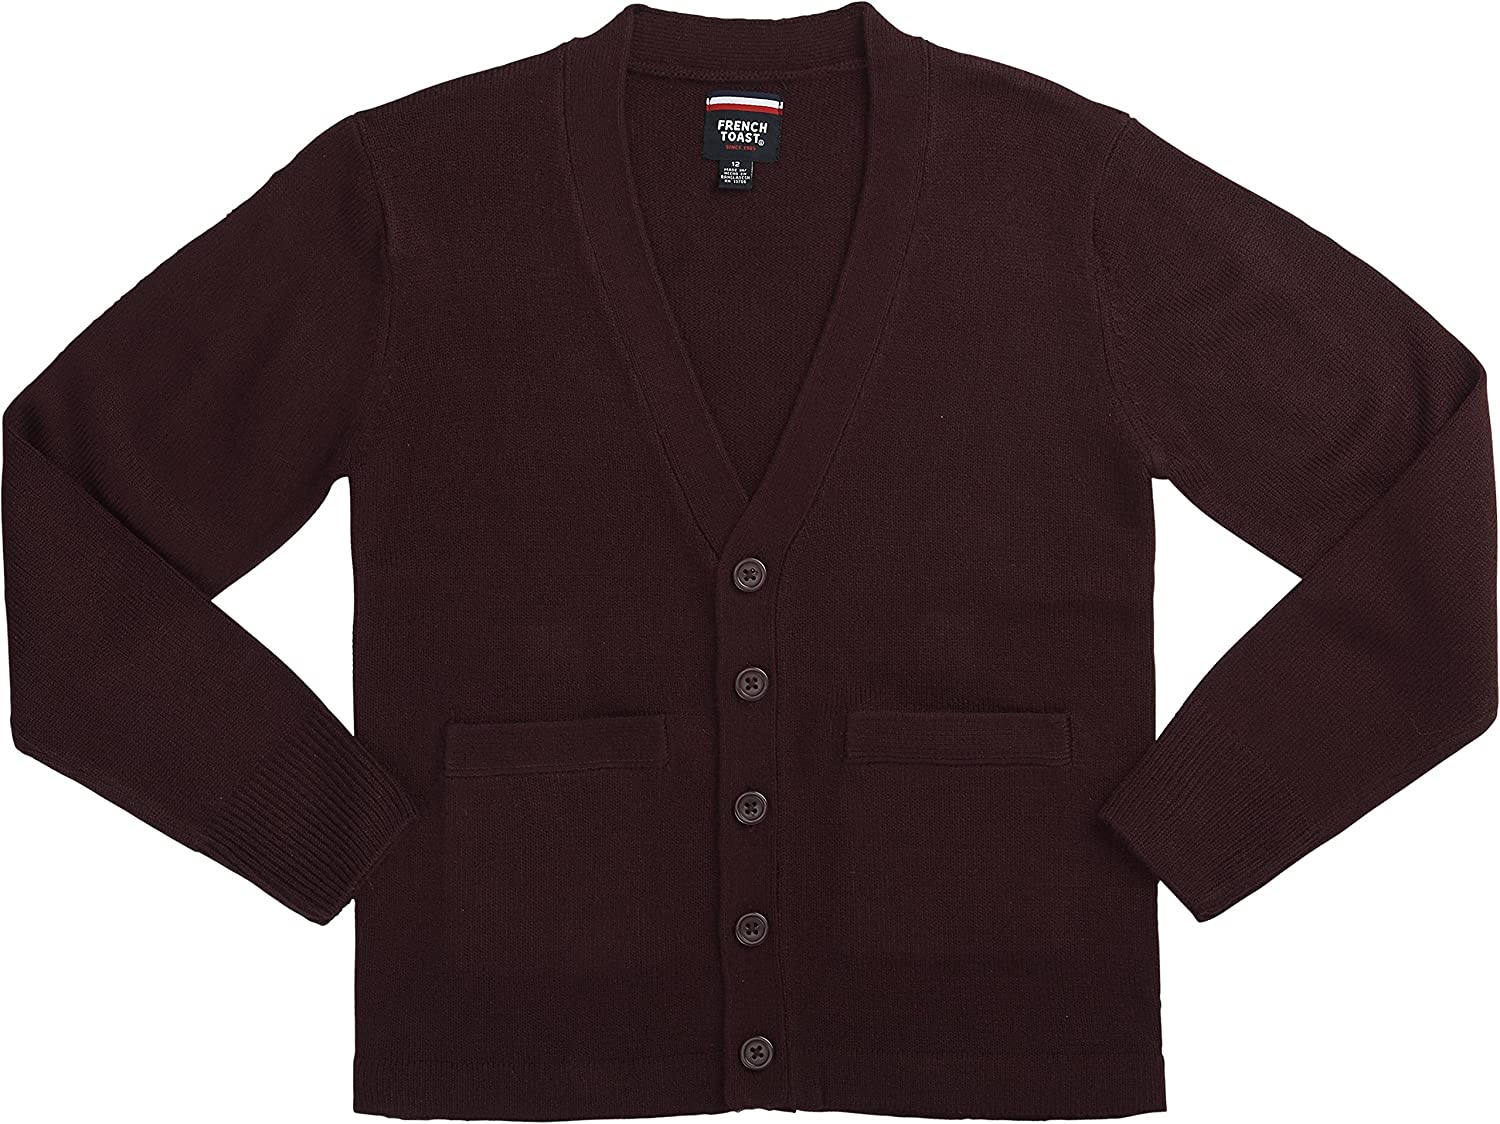 Burgundy 14//16 X-Large French Toast School Uniform Boys Anti-Pill V-Neck Cardigan Sweater